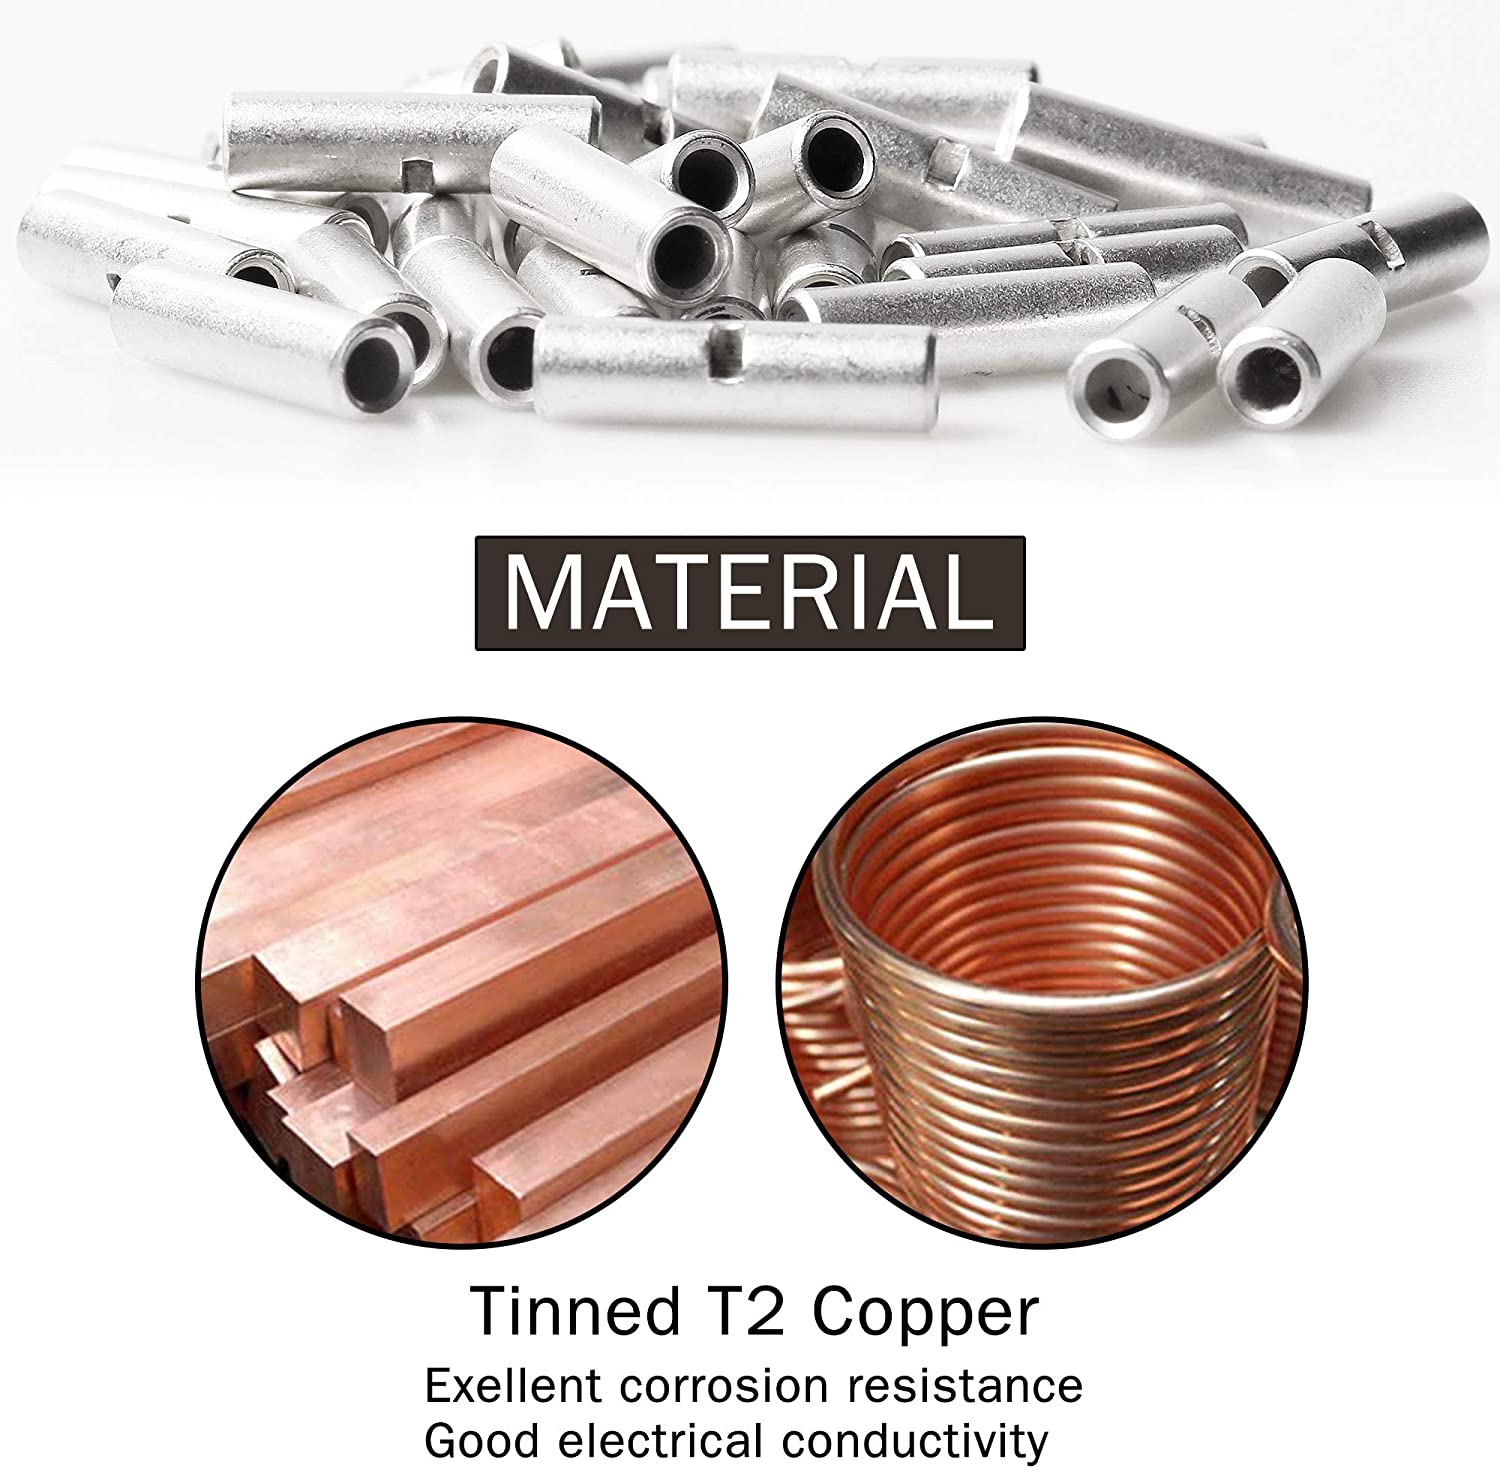 200pcs T2 Copper Non-Insulated Butt Connectors 22-18 16-14 12-10 AWG Gauge Thick Electrical Wire Connector Uninsulated Ferrule Cable Crimp Terminal Splice Kit with Storage Case for DIY by MILAPEAK